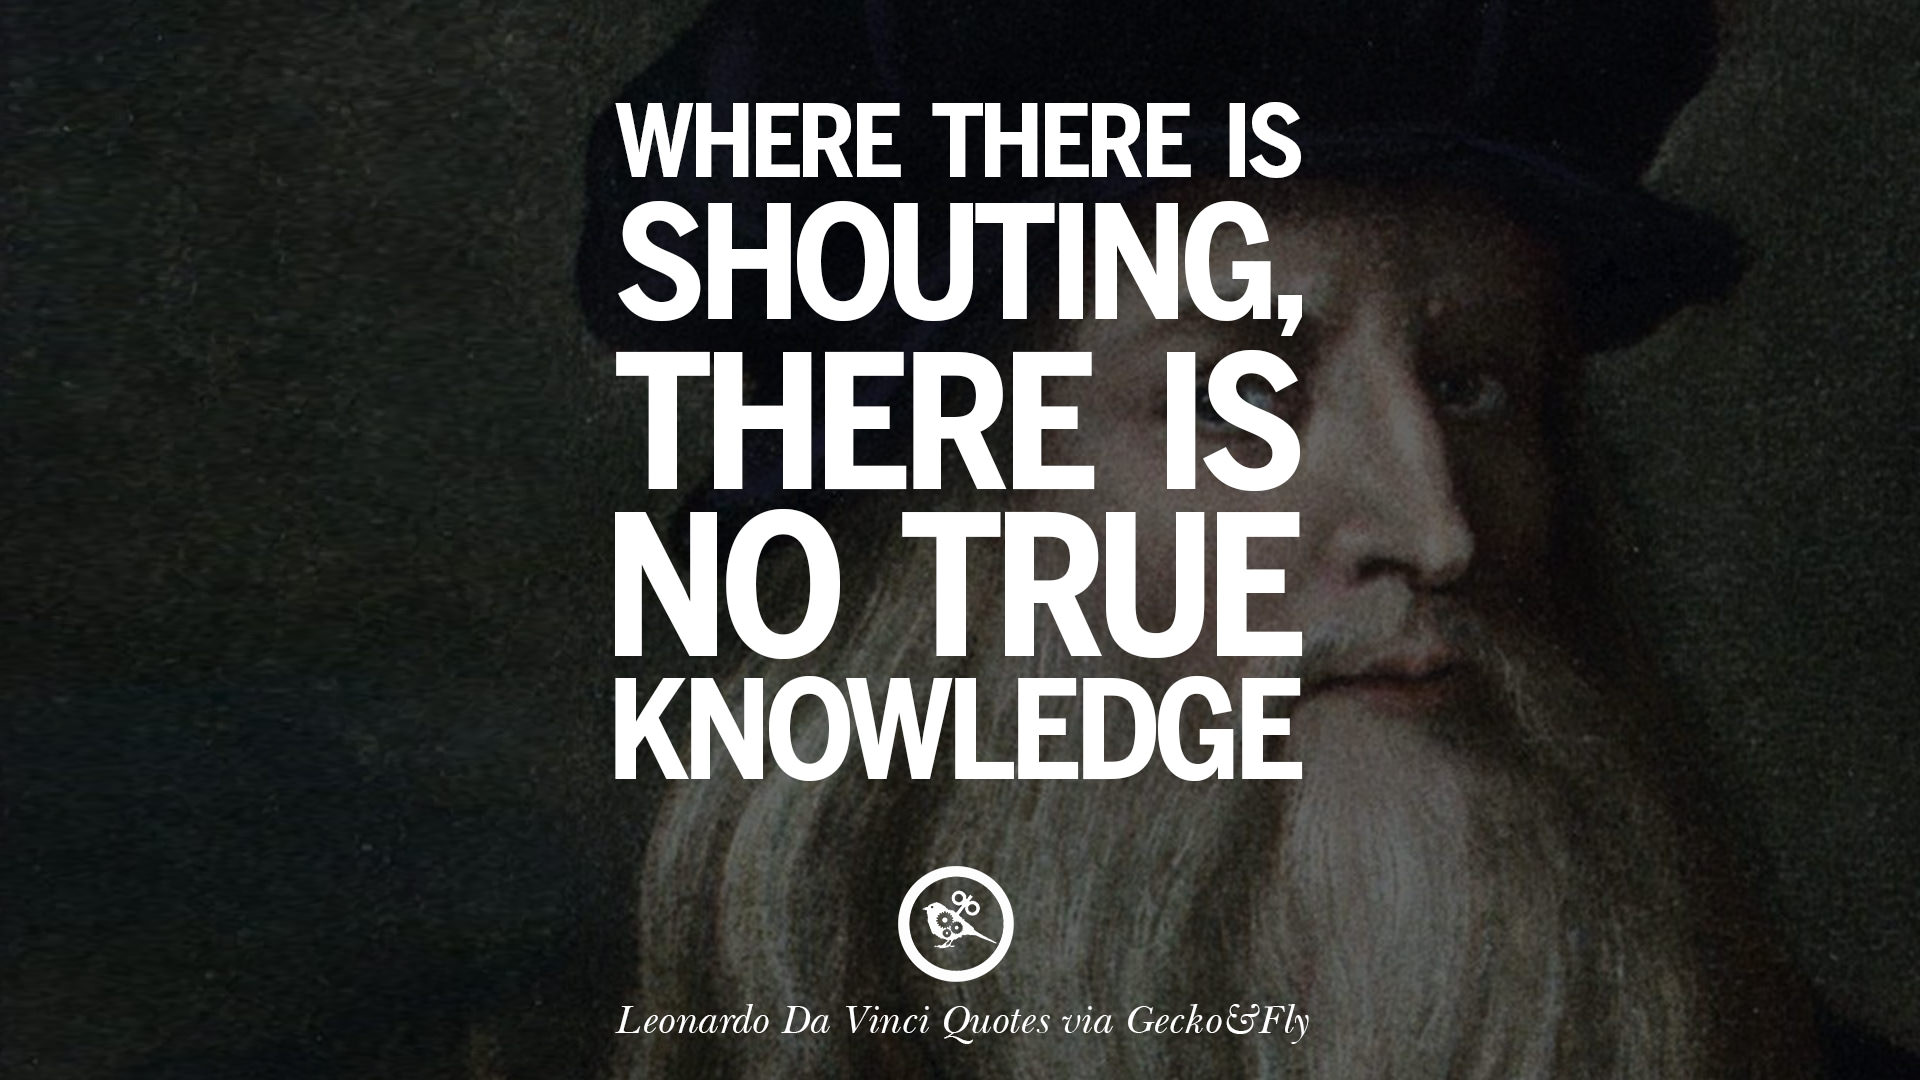 Charming Where There Is Shouting, There Is No True Knowledge.